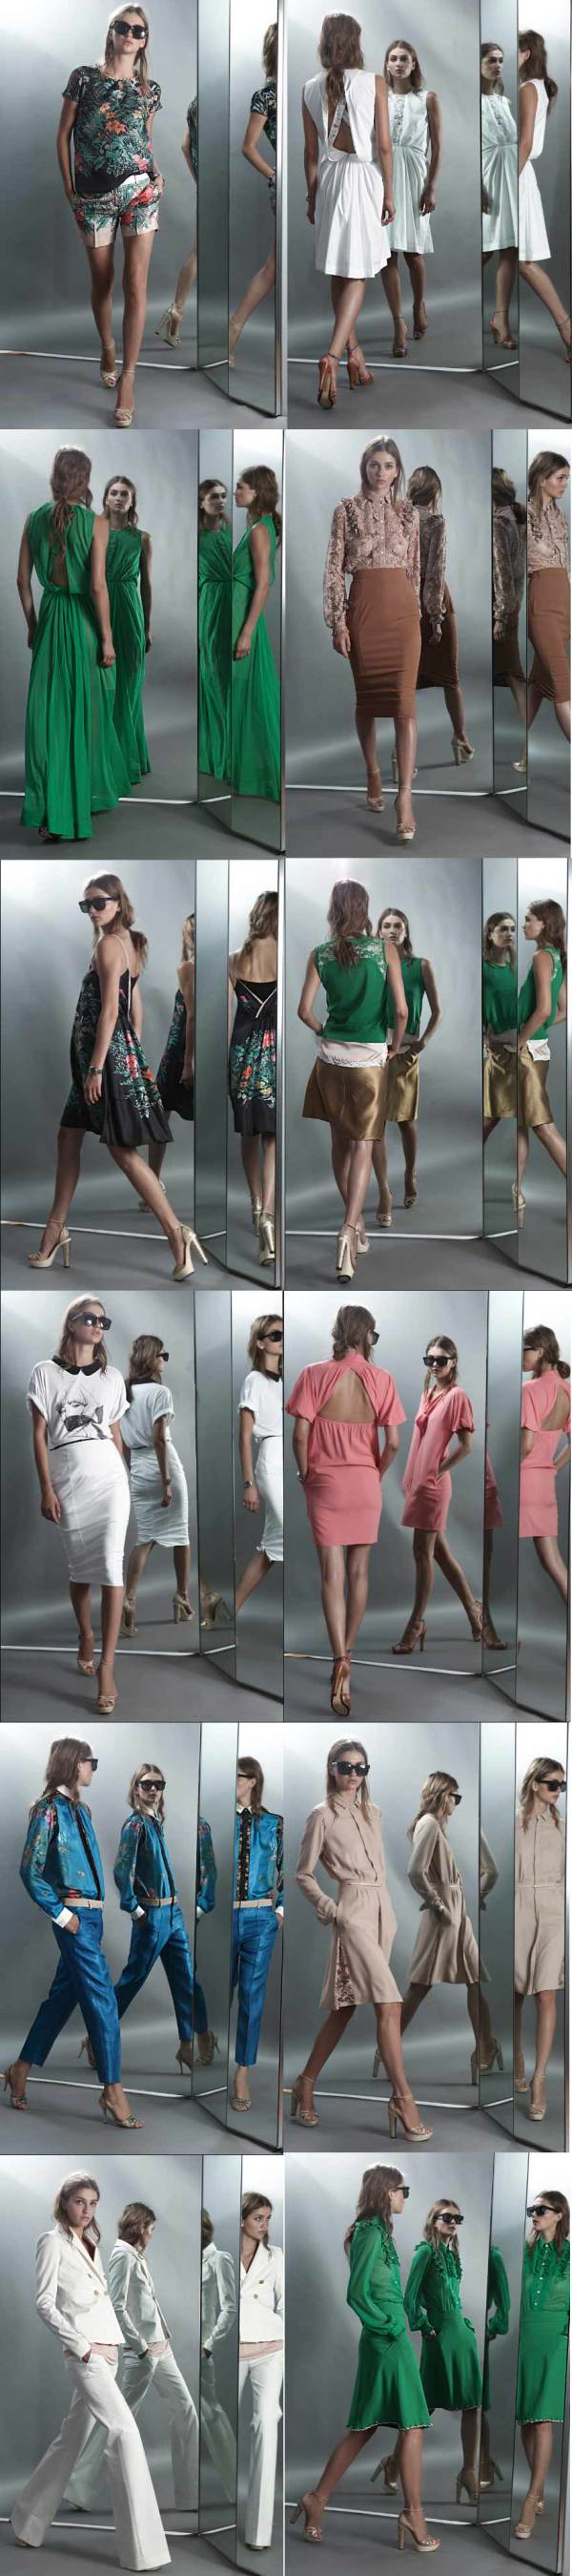 No21 Resort 2012 collection, designer  Alessandro Dell'Acqua